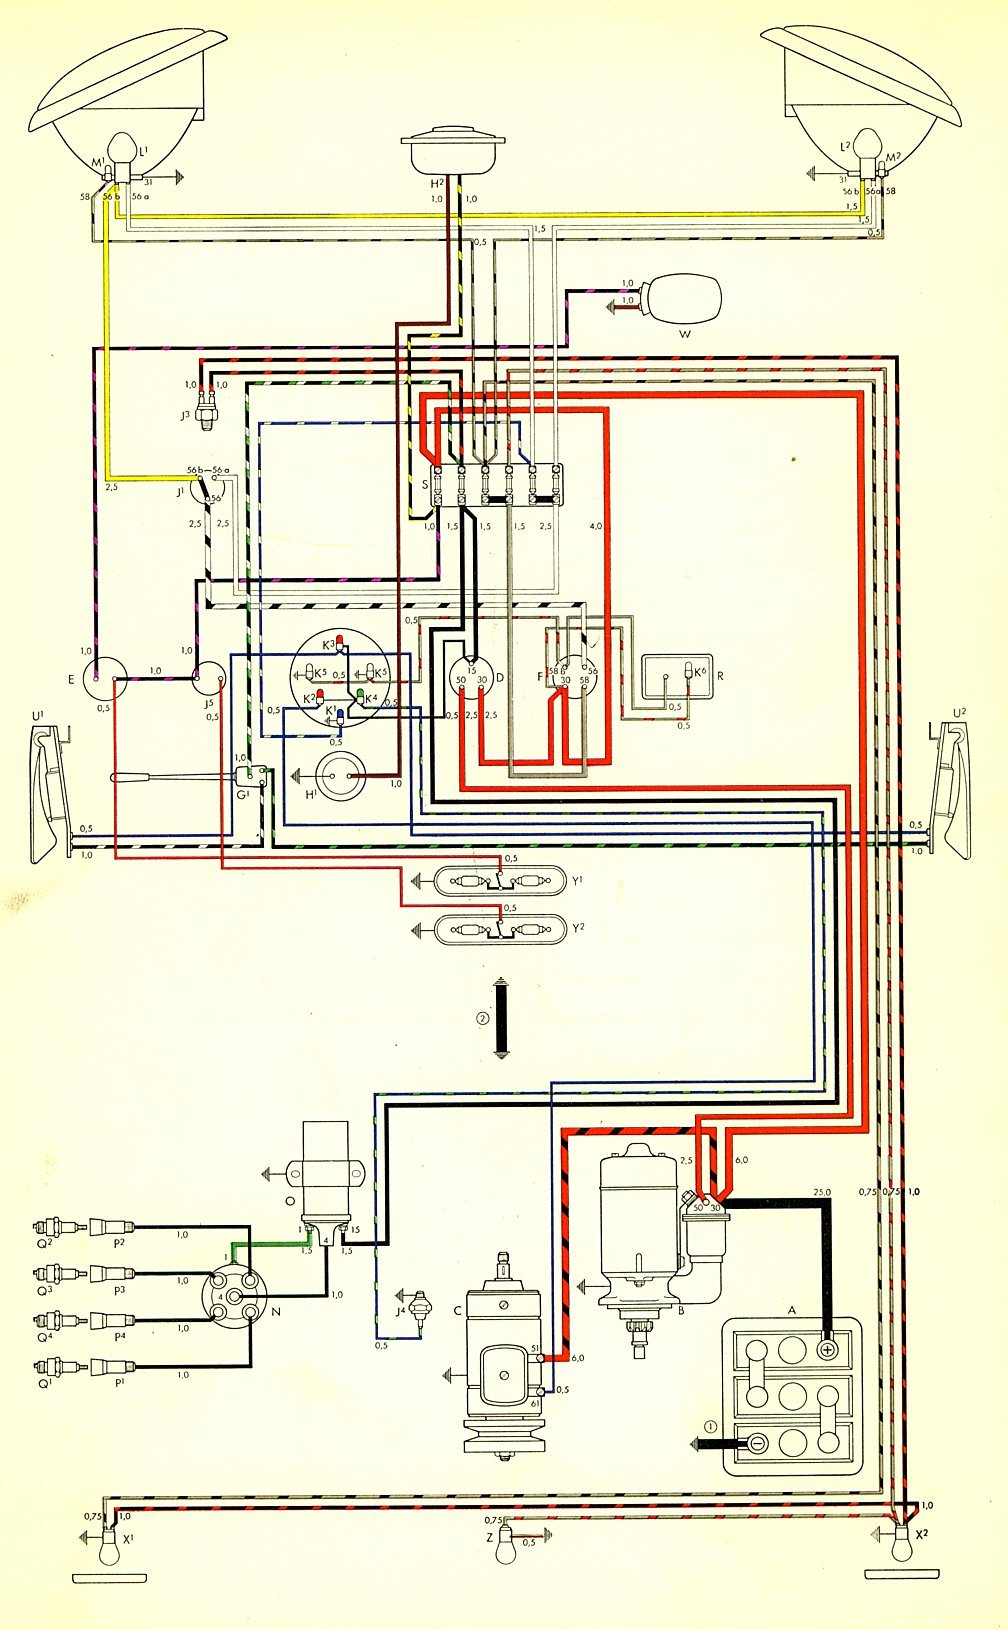 1963 Impala Wiring Diagram Color Get Free Image About Wiring Diagram